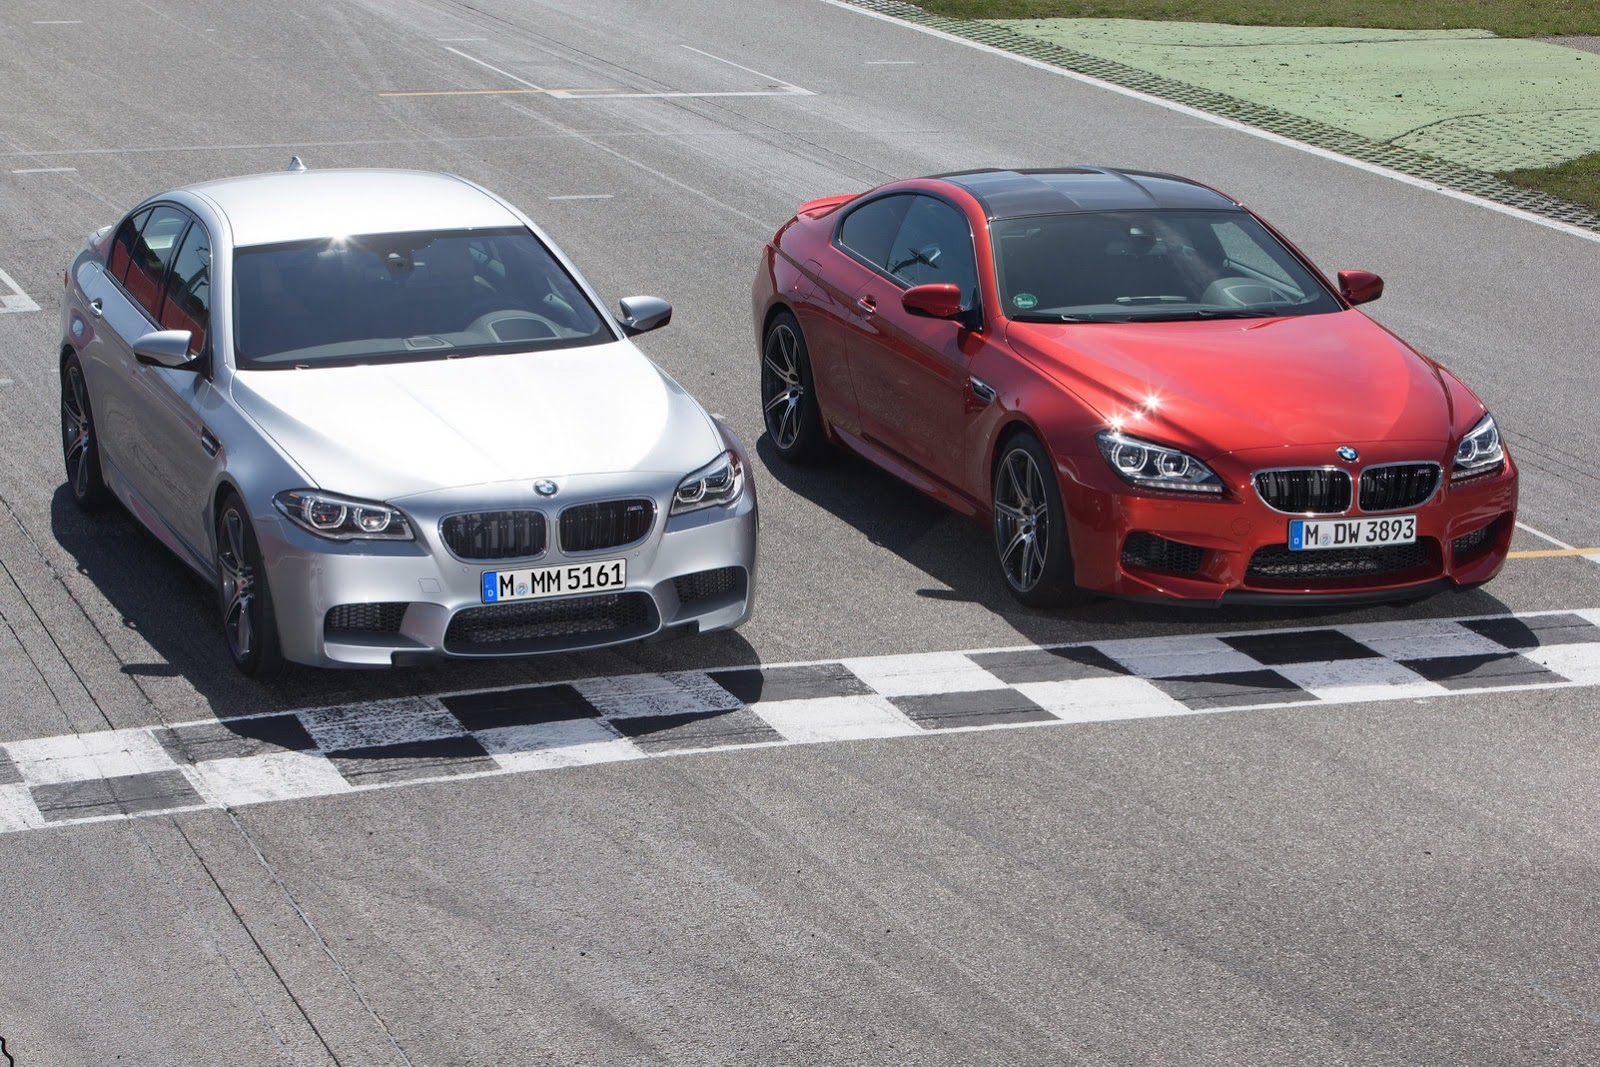 Competition Paket, Competition Package, BMW M5, M5, M6, Facelift, Tuner, Tuning, Mopf, Fahrwerk, Felgen